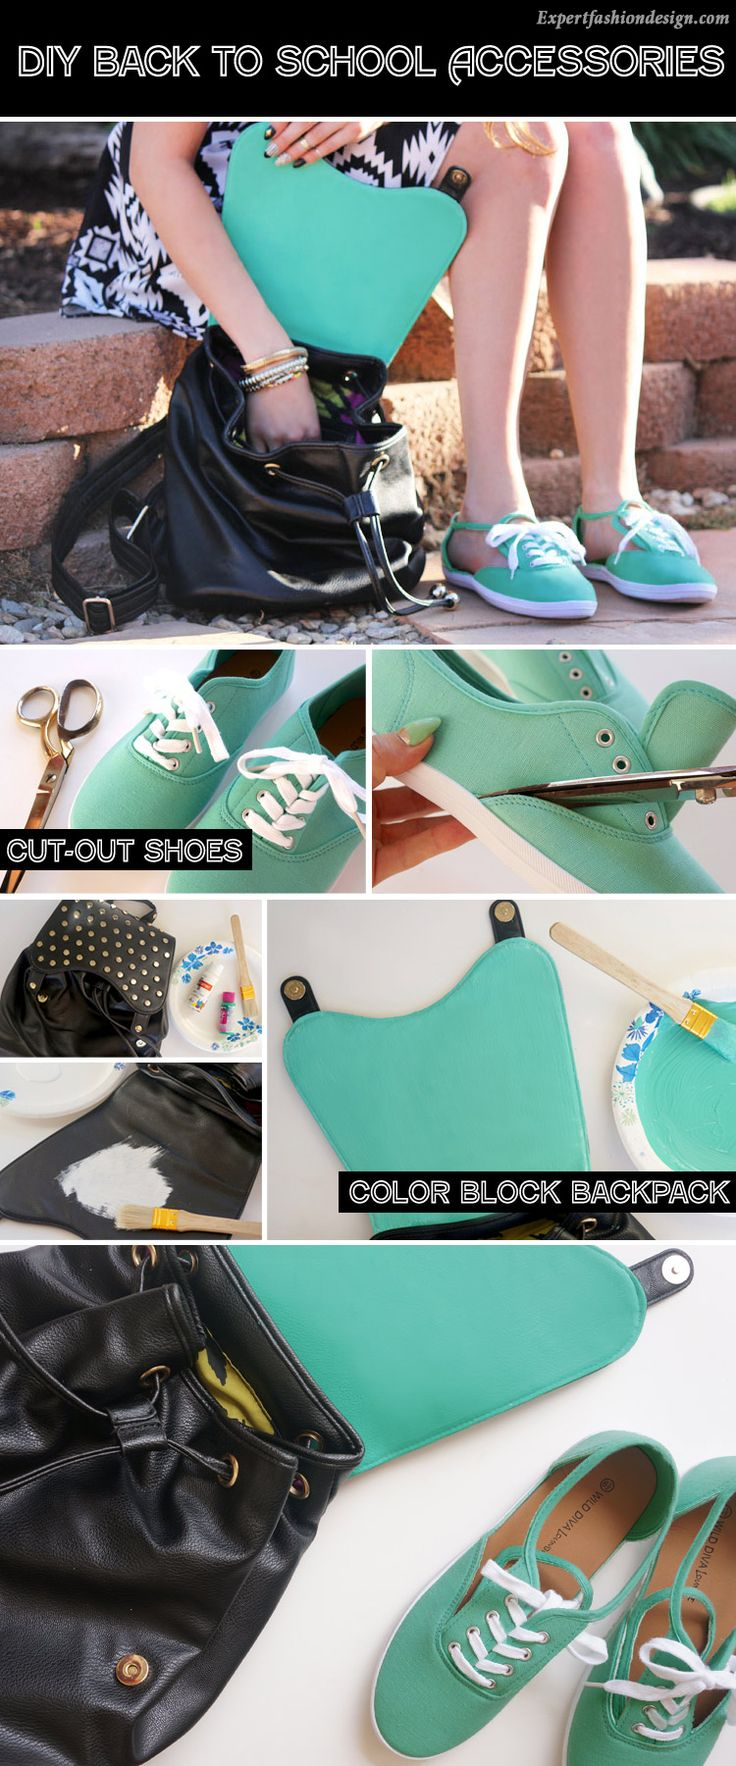 DIY Projects for Every Girl to Get Fashionable Ideas - 12 #Dresses